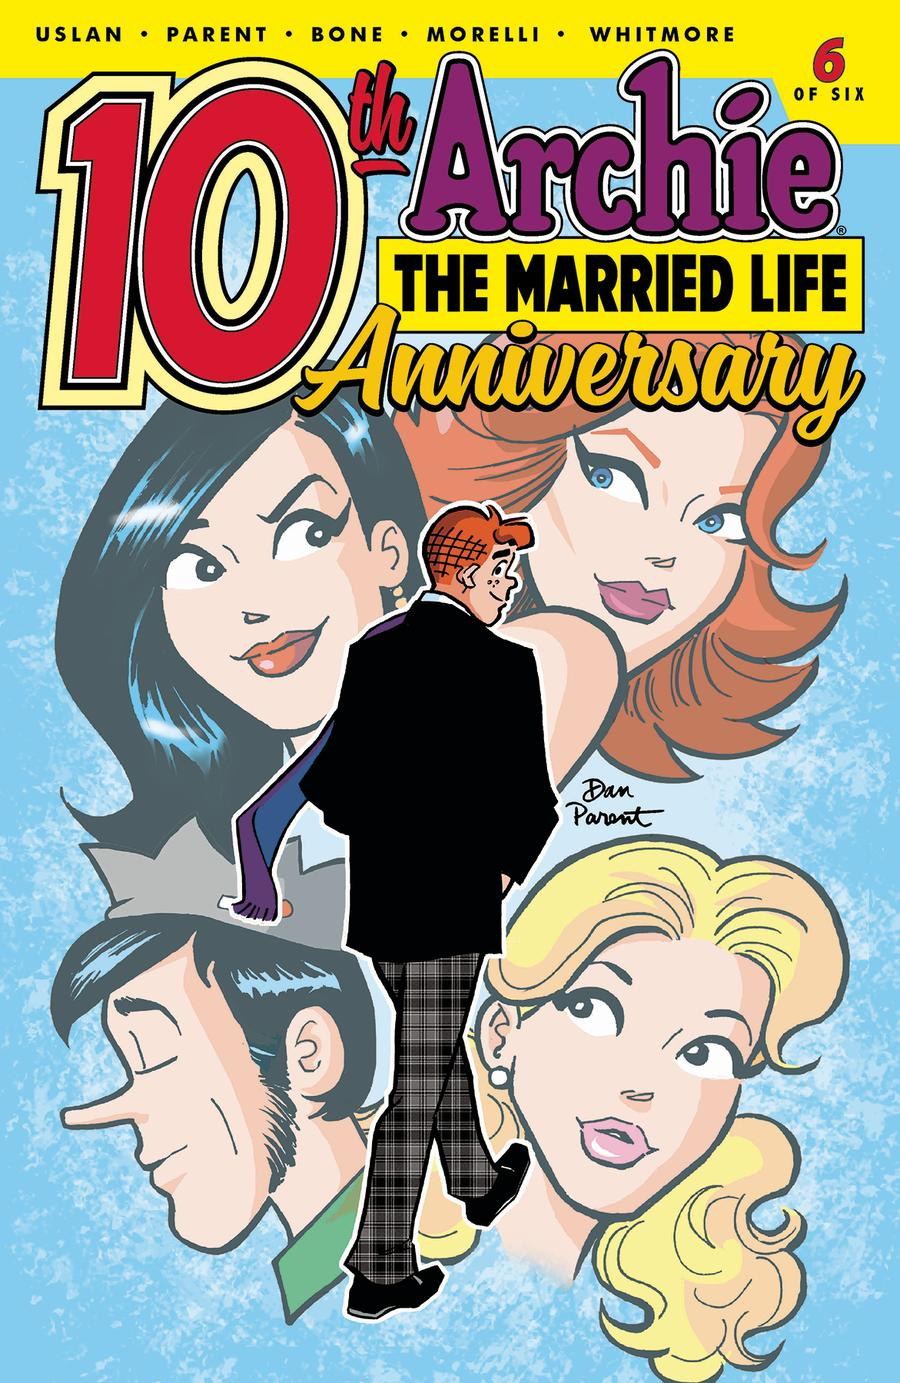 Archie The Married Life 10th Anniversary #6 Cover A Regular Dan Parent Cover